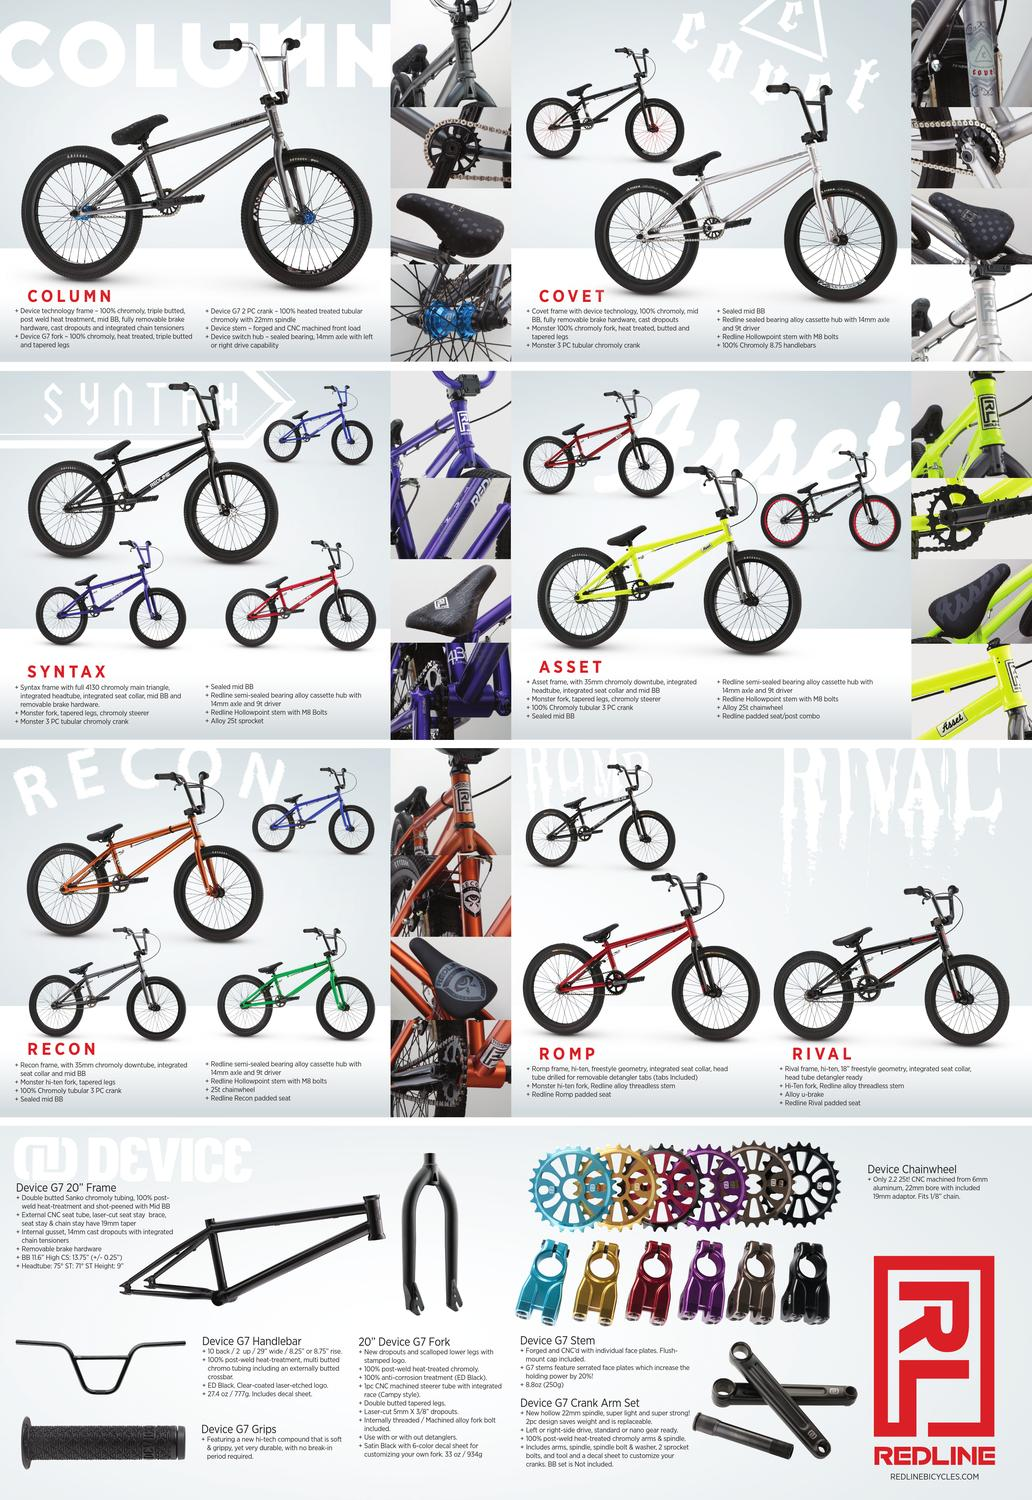 2013 Redline Bmx Freestyle Poster By Redline Bicycles Issuu